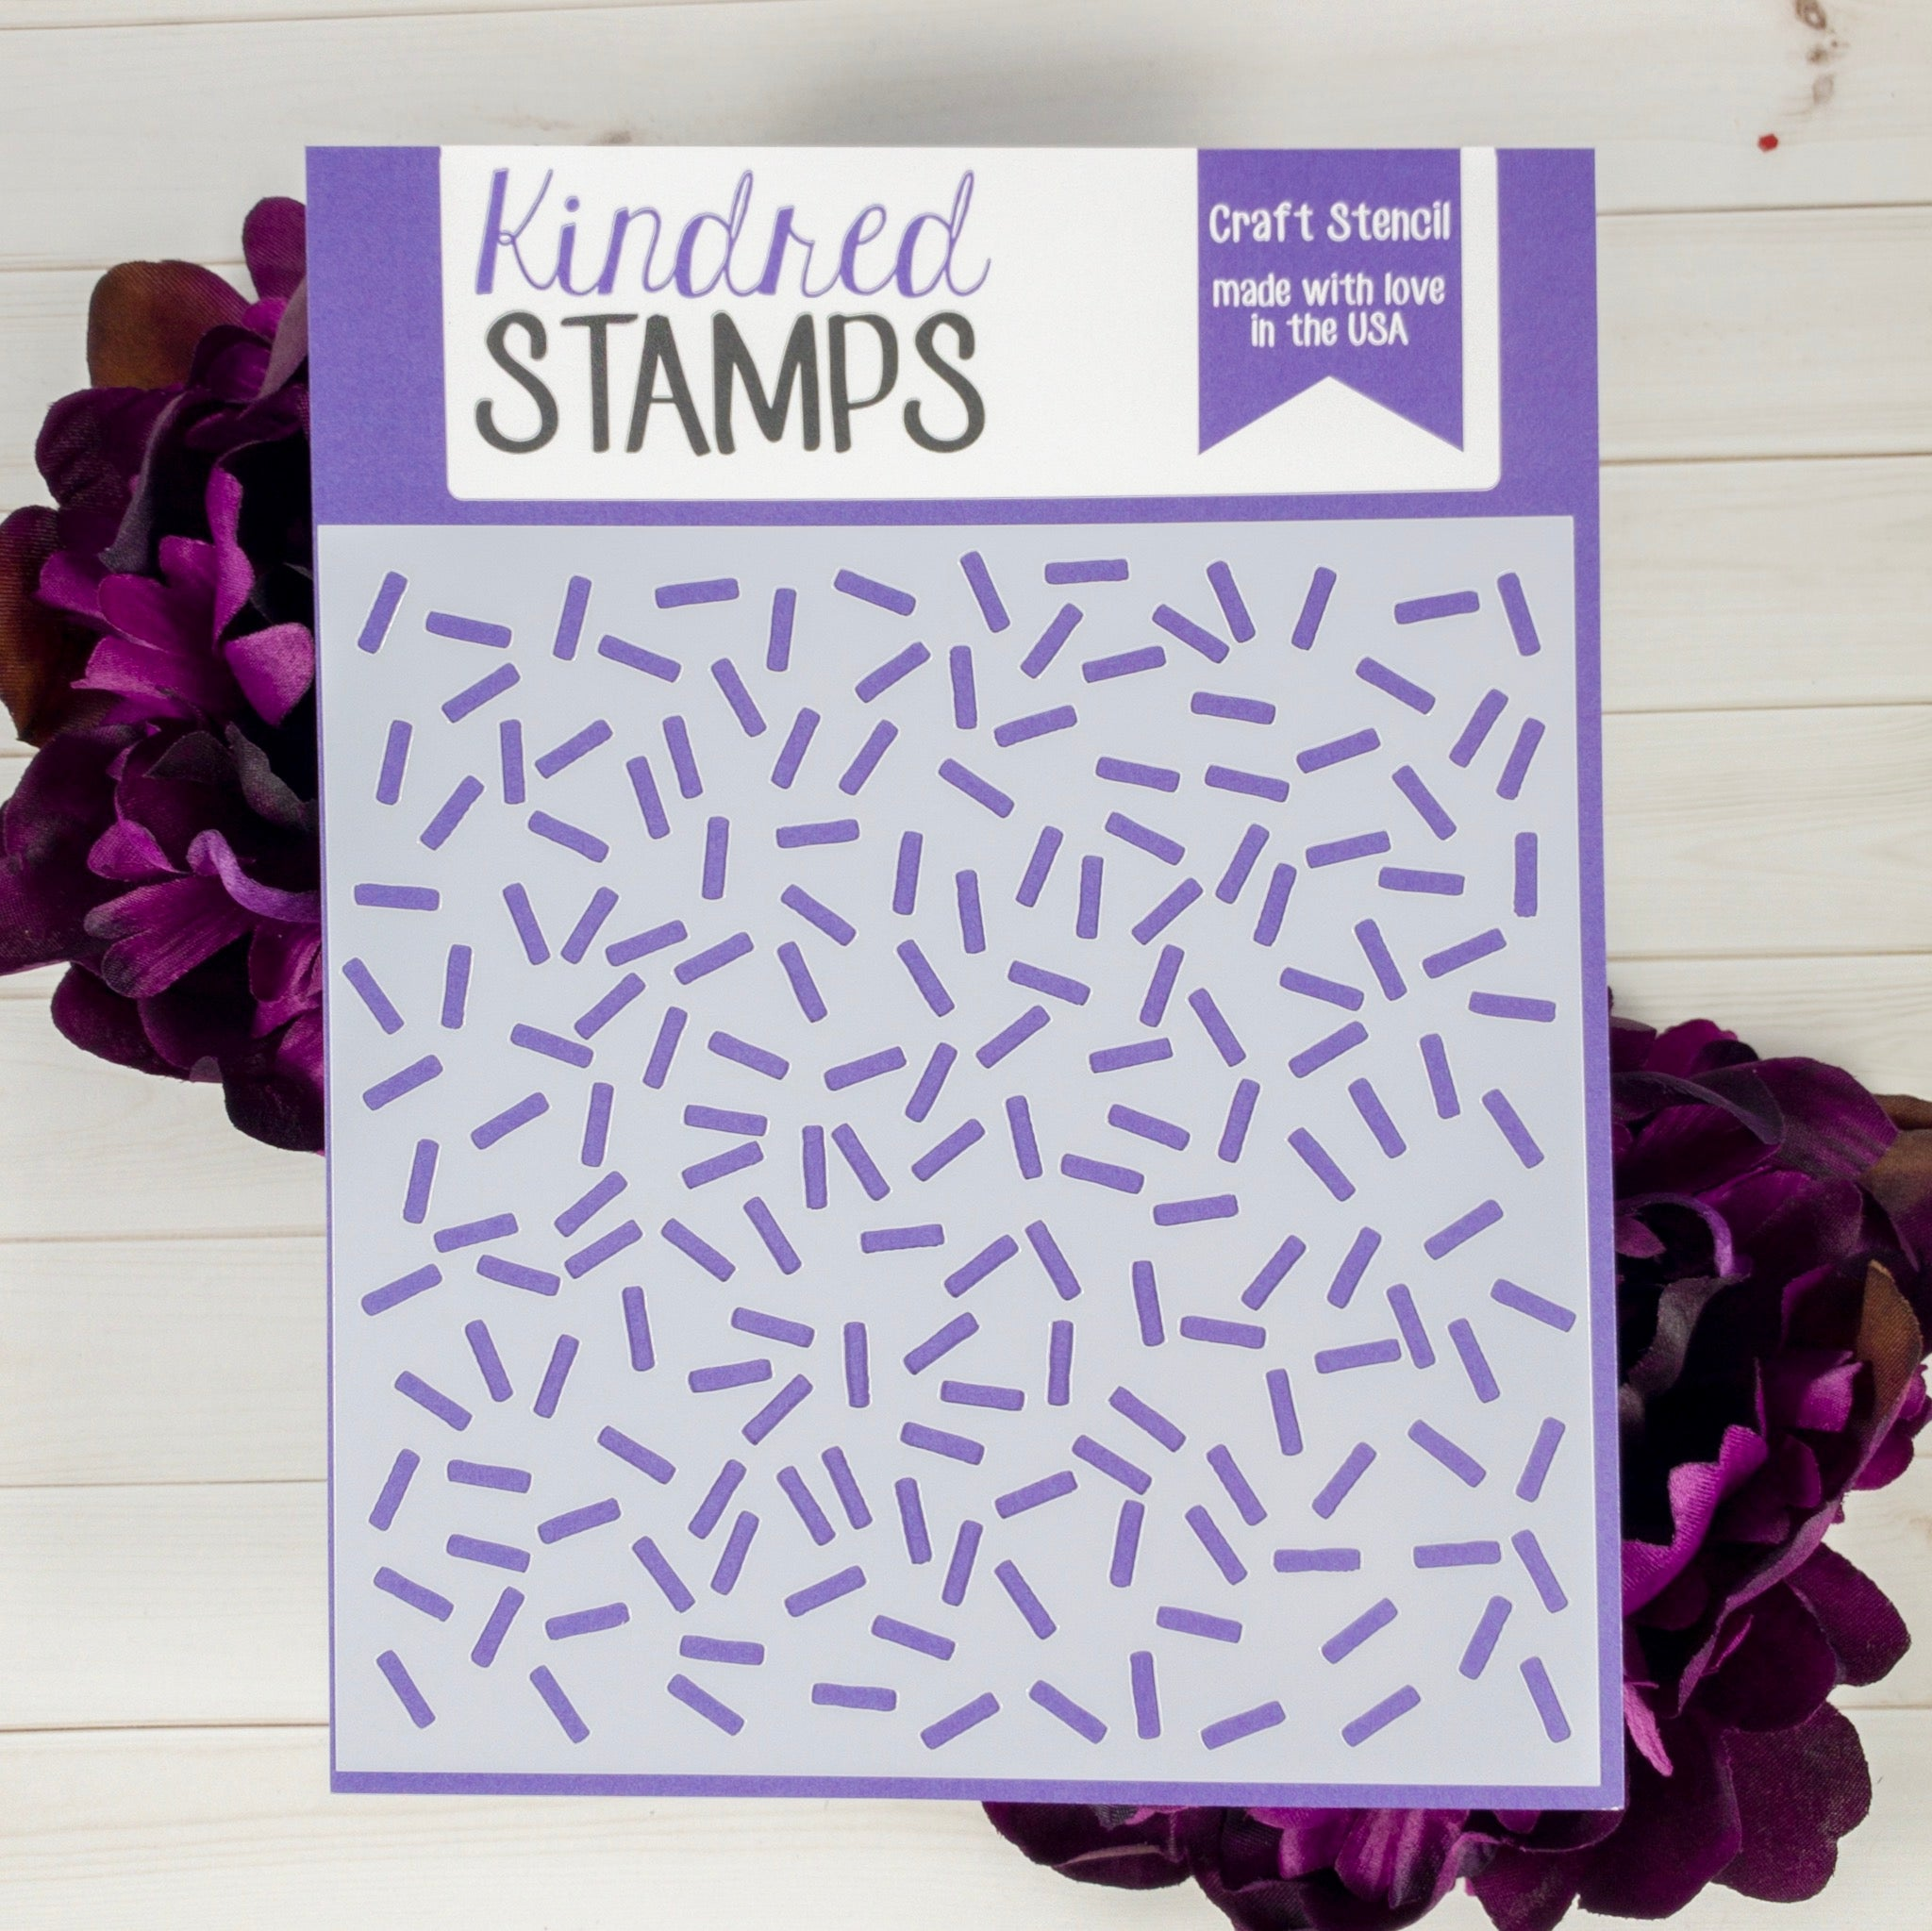 Kindred Stamps Sprinkles Stencil